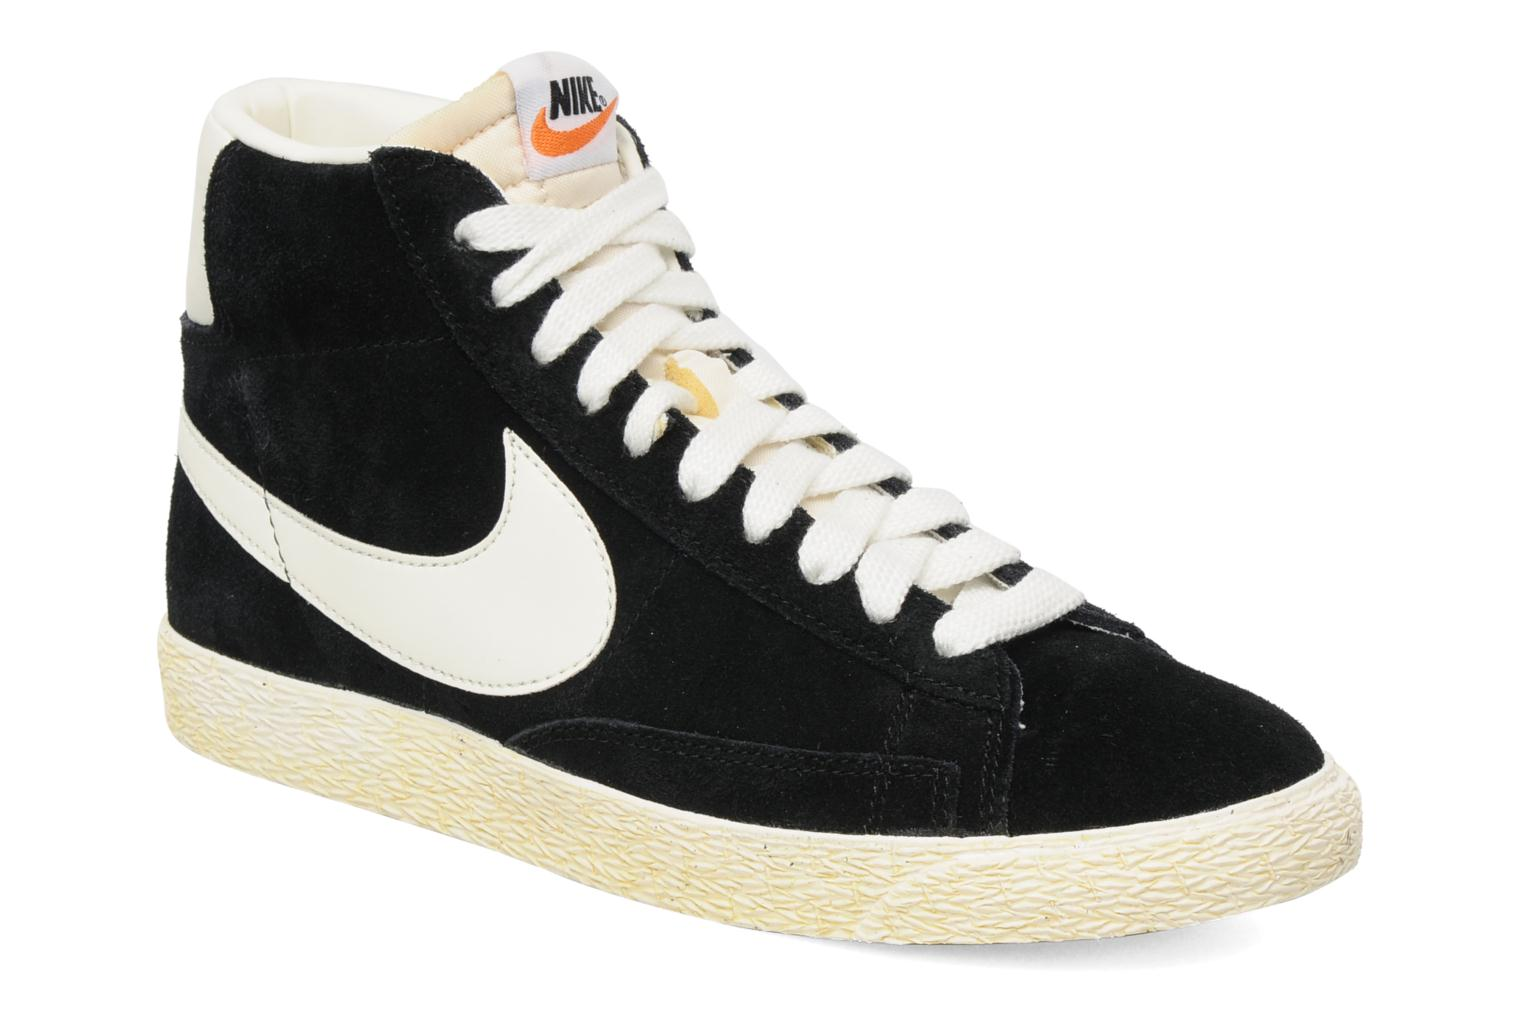 Blazer High Vintage Black/ Sail